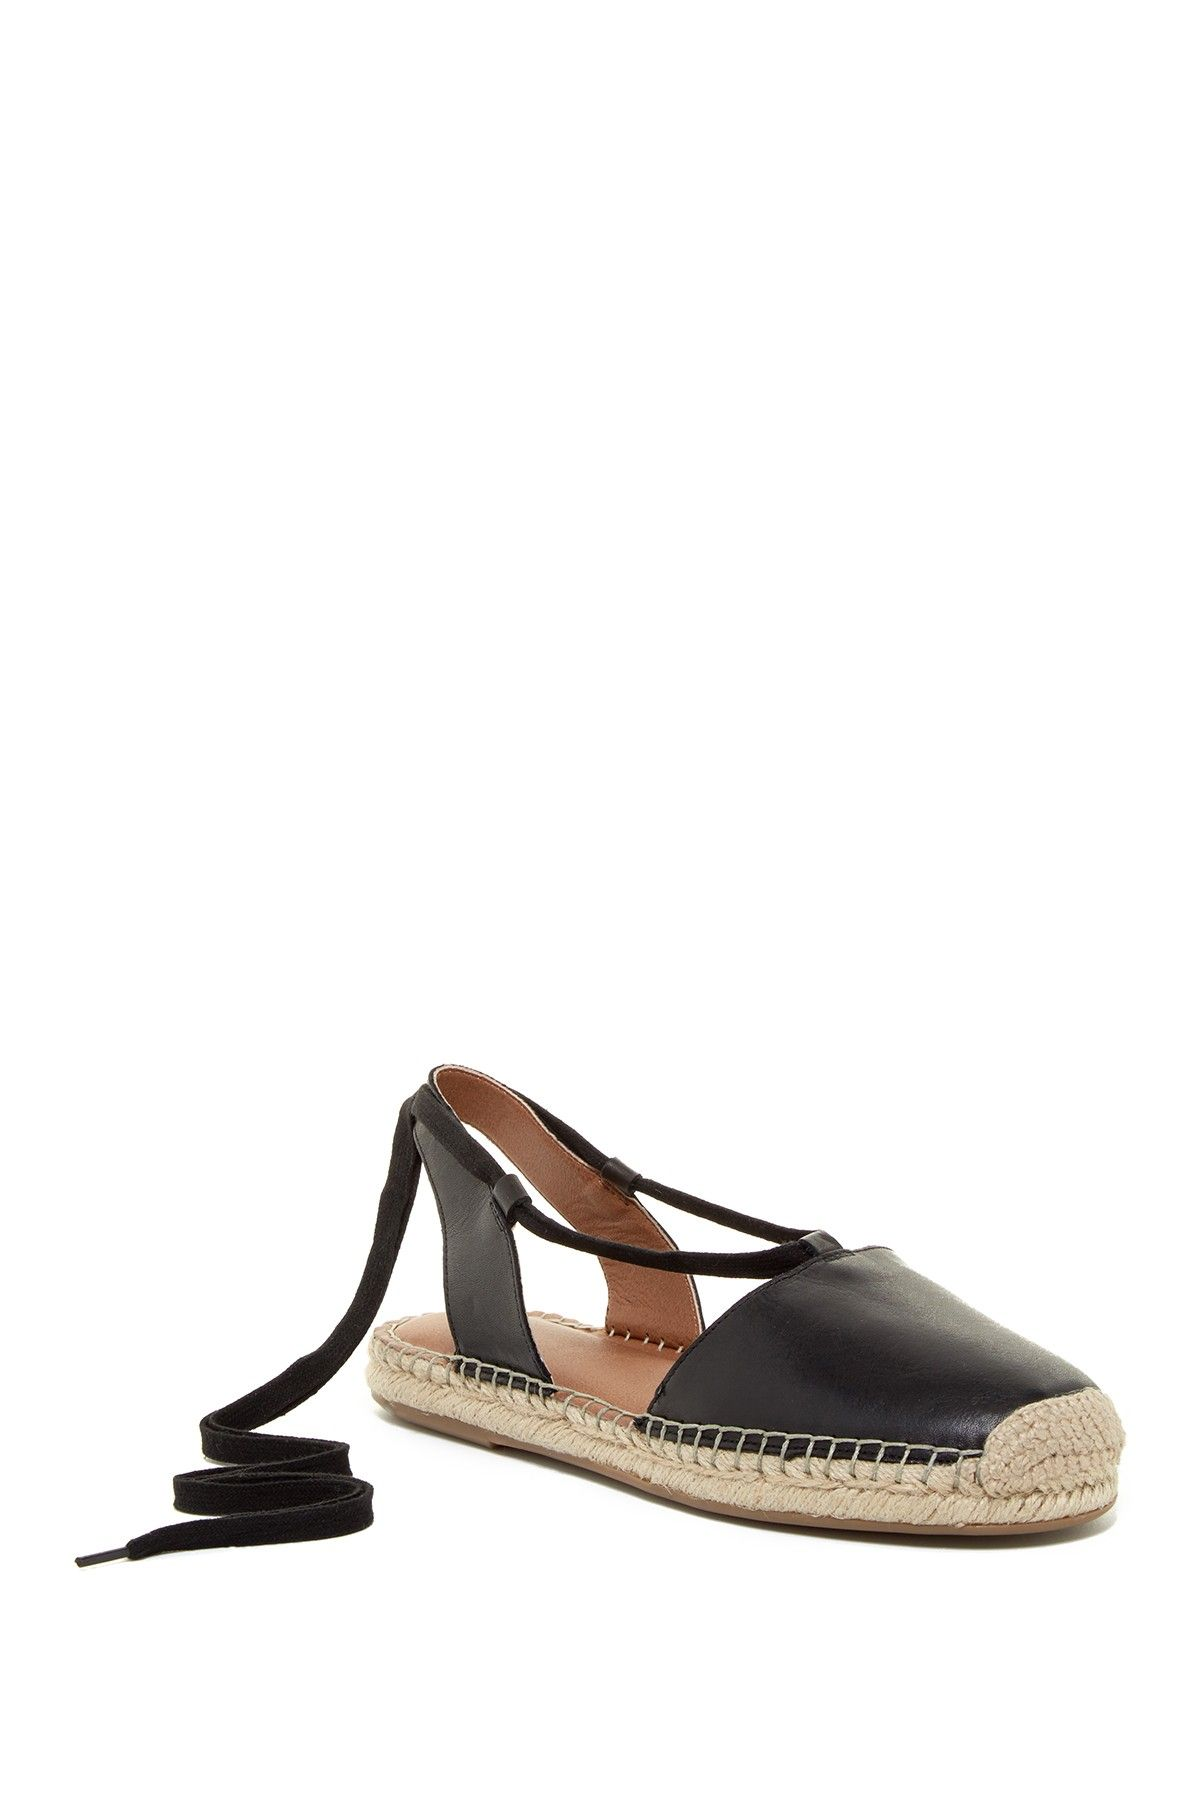 045c47e1e3 Crystal Espadrille Flat - Wide Width Available | Products ...